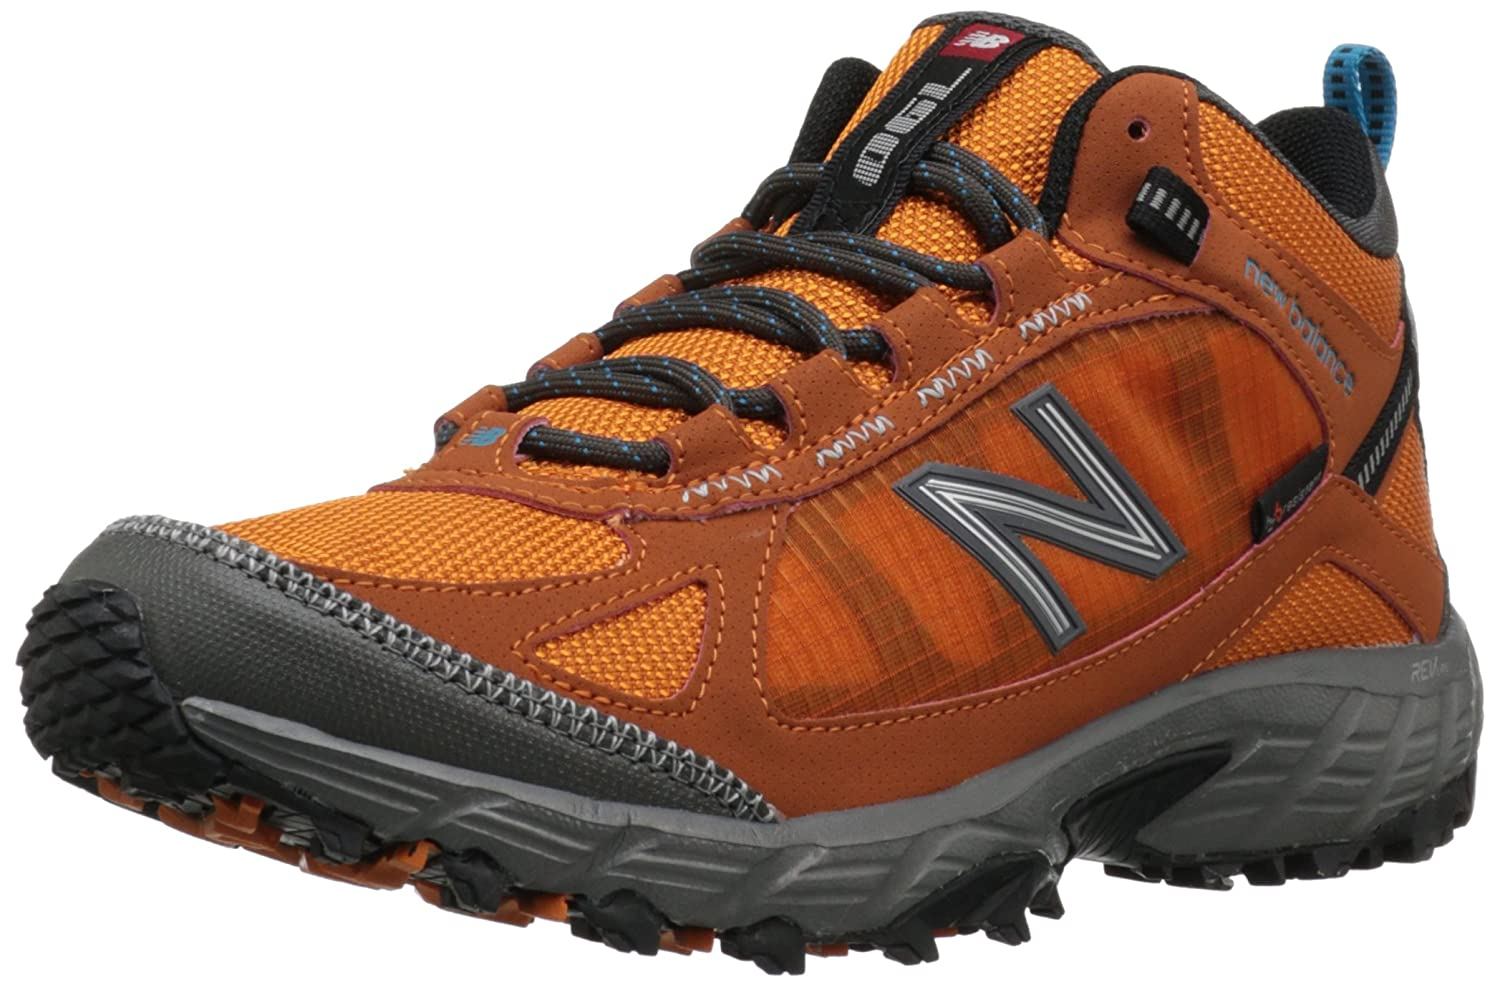 new balance 1500 hiking boot review